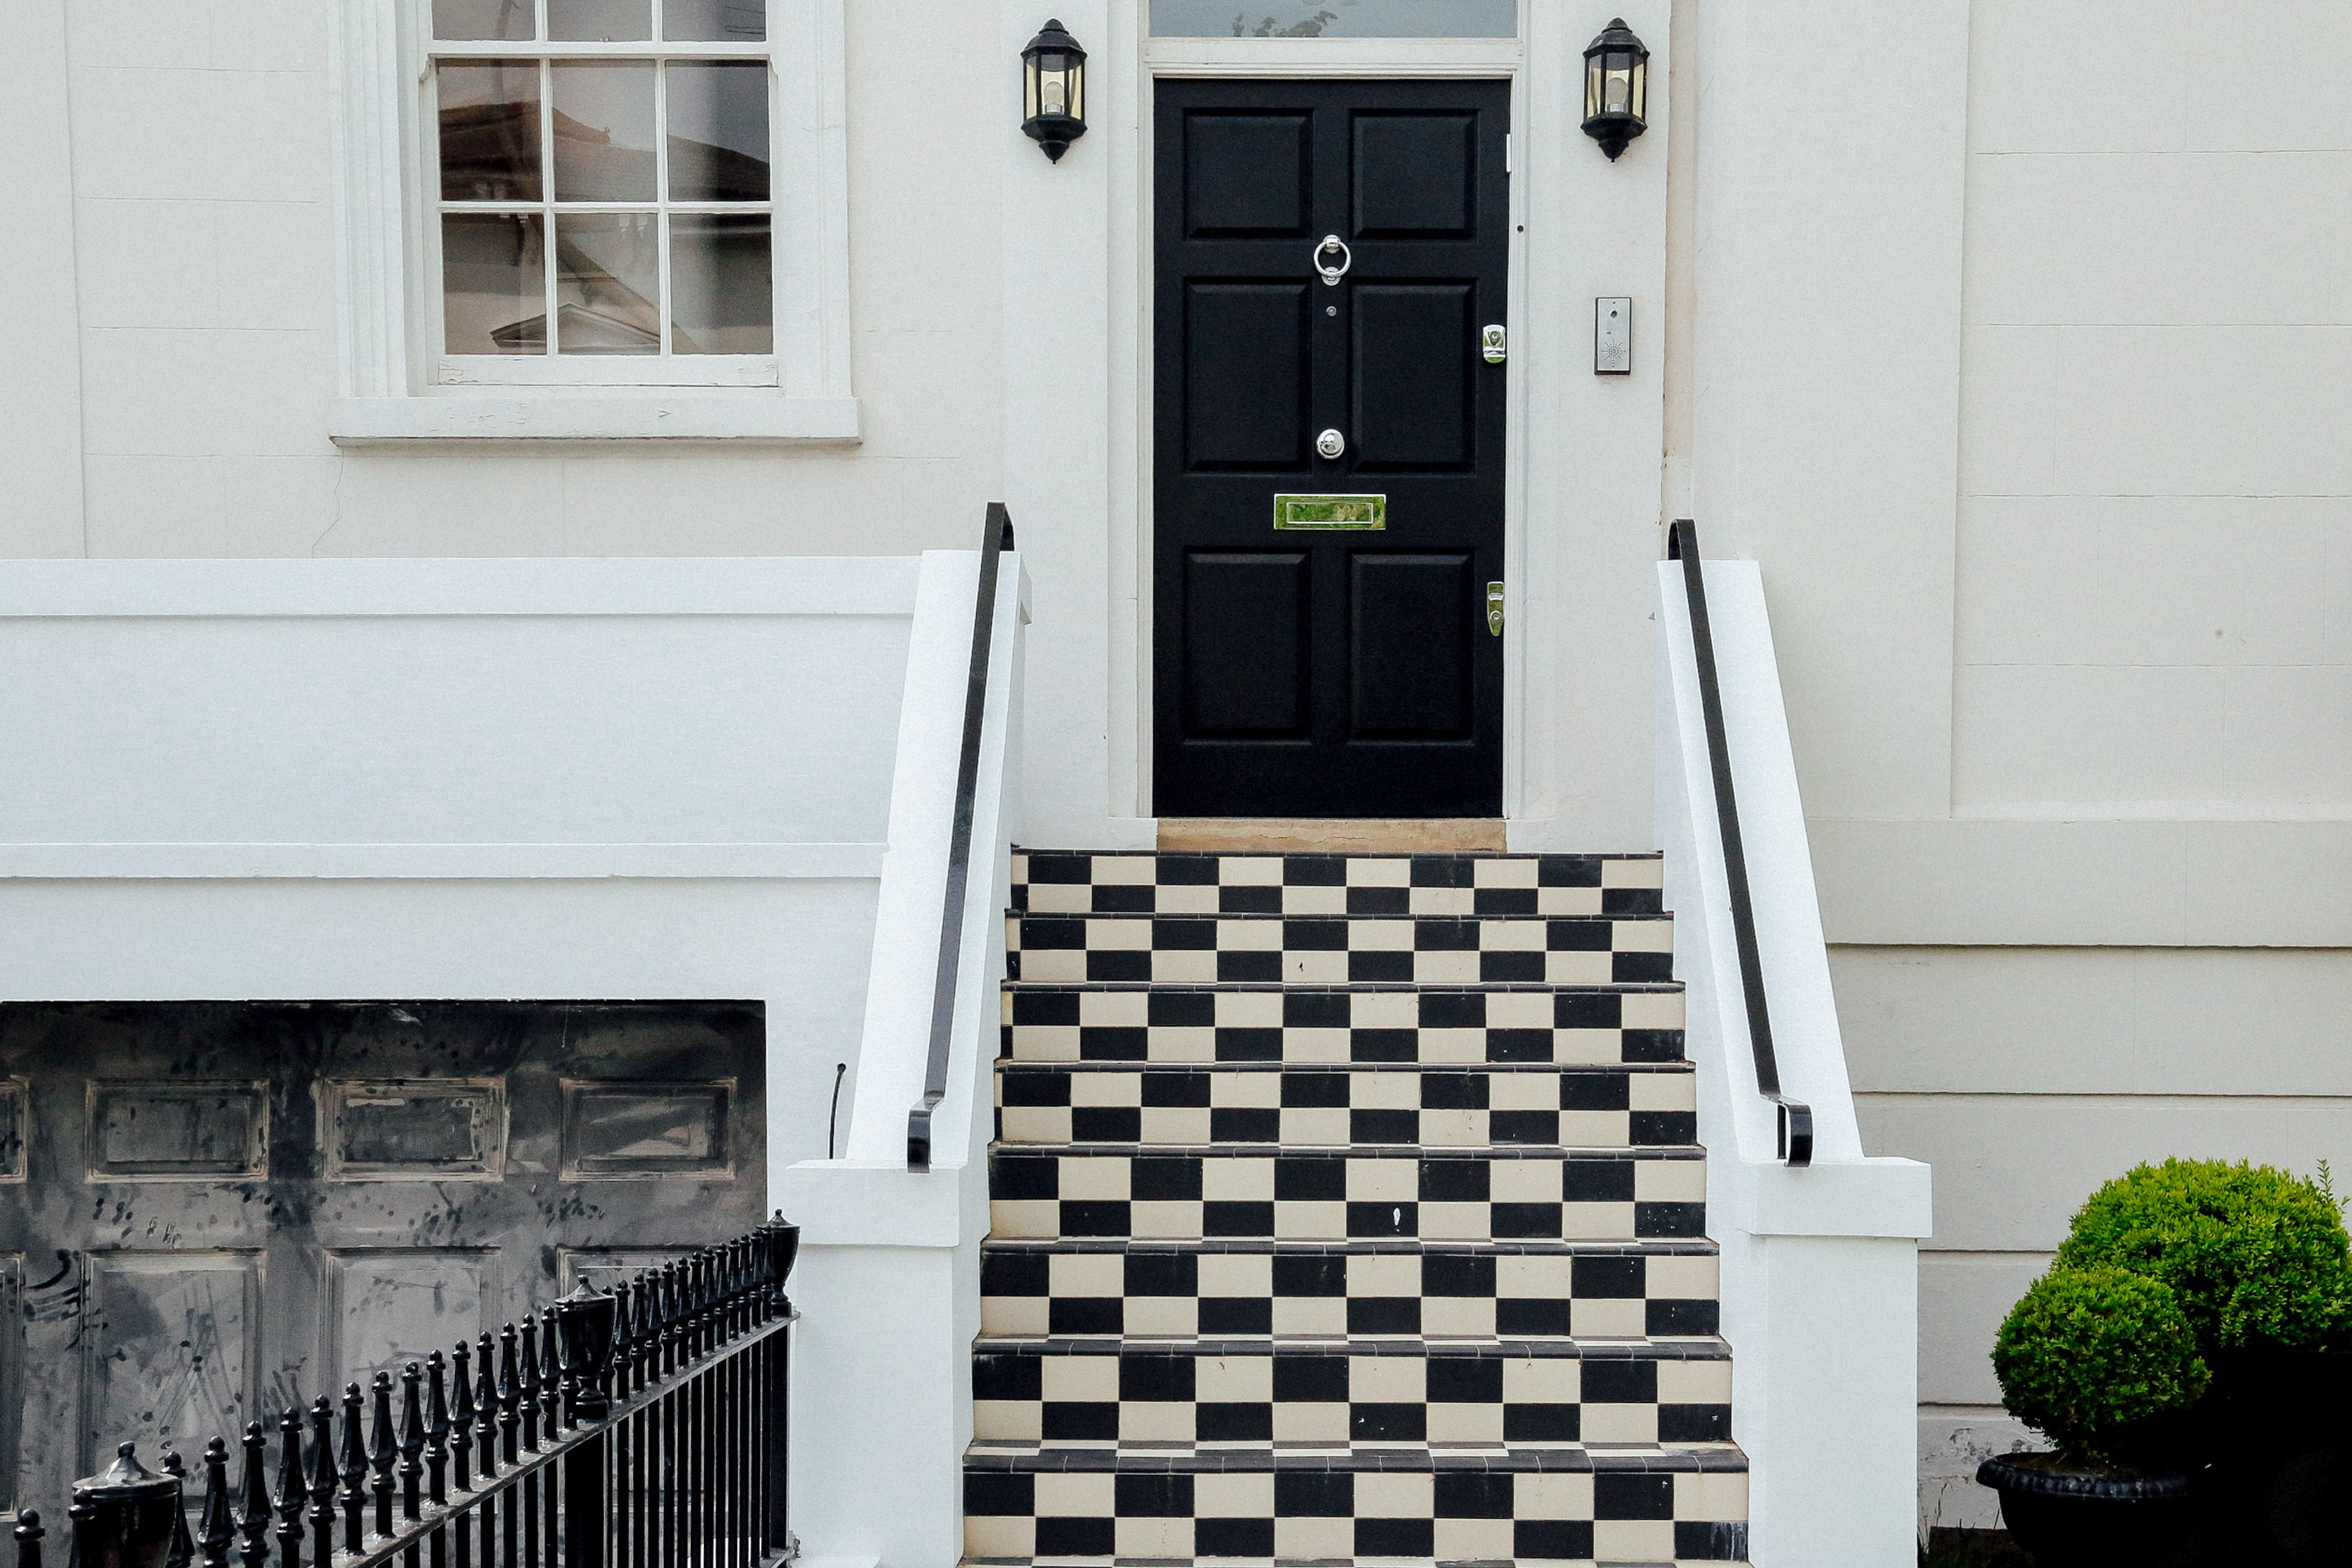 Checkered black and white residential outdoor stairway and black door in London